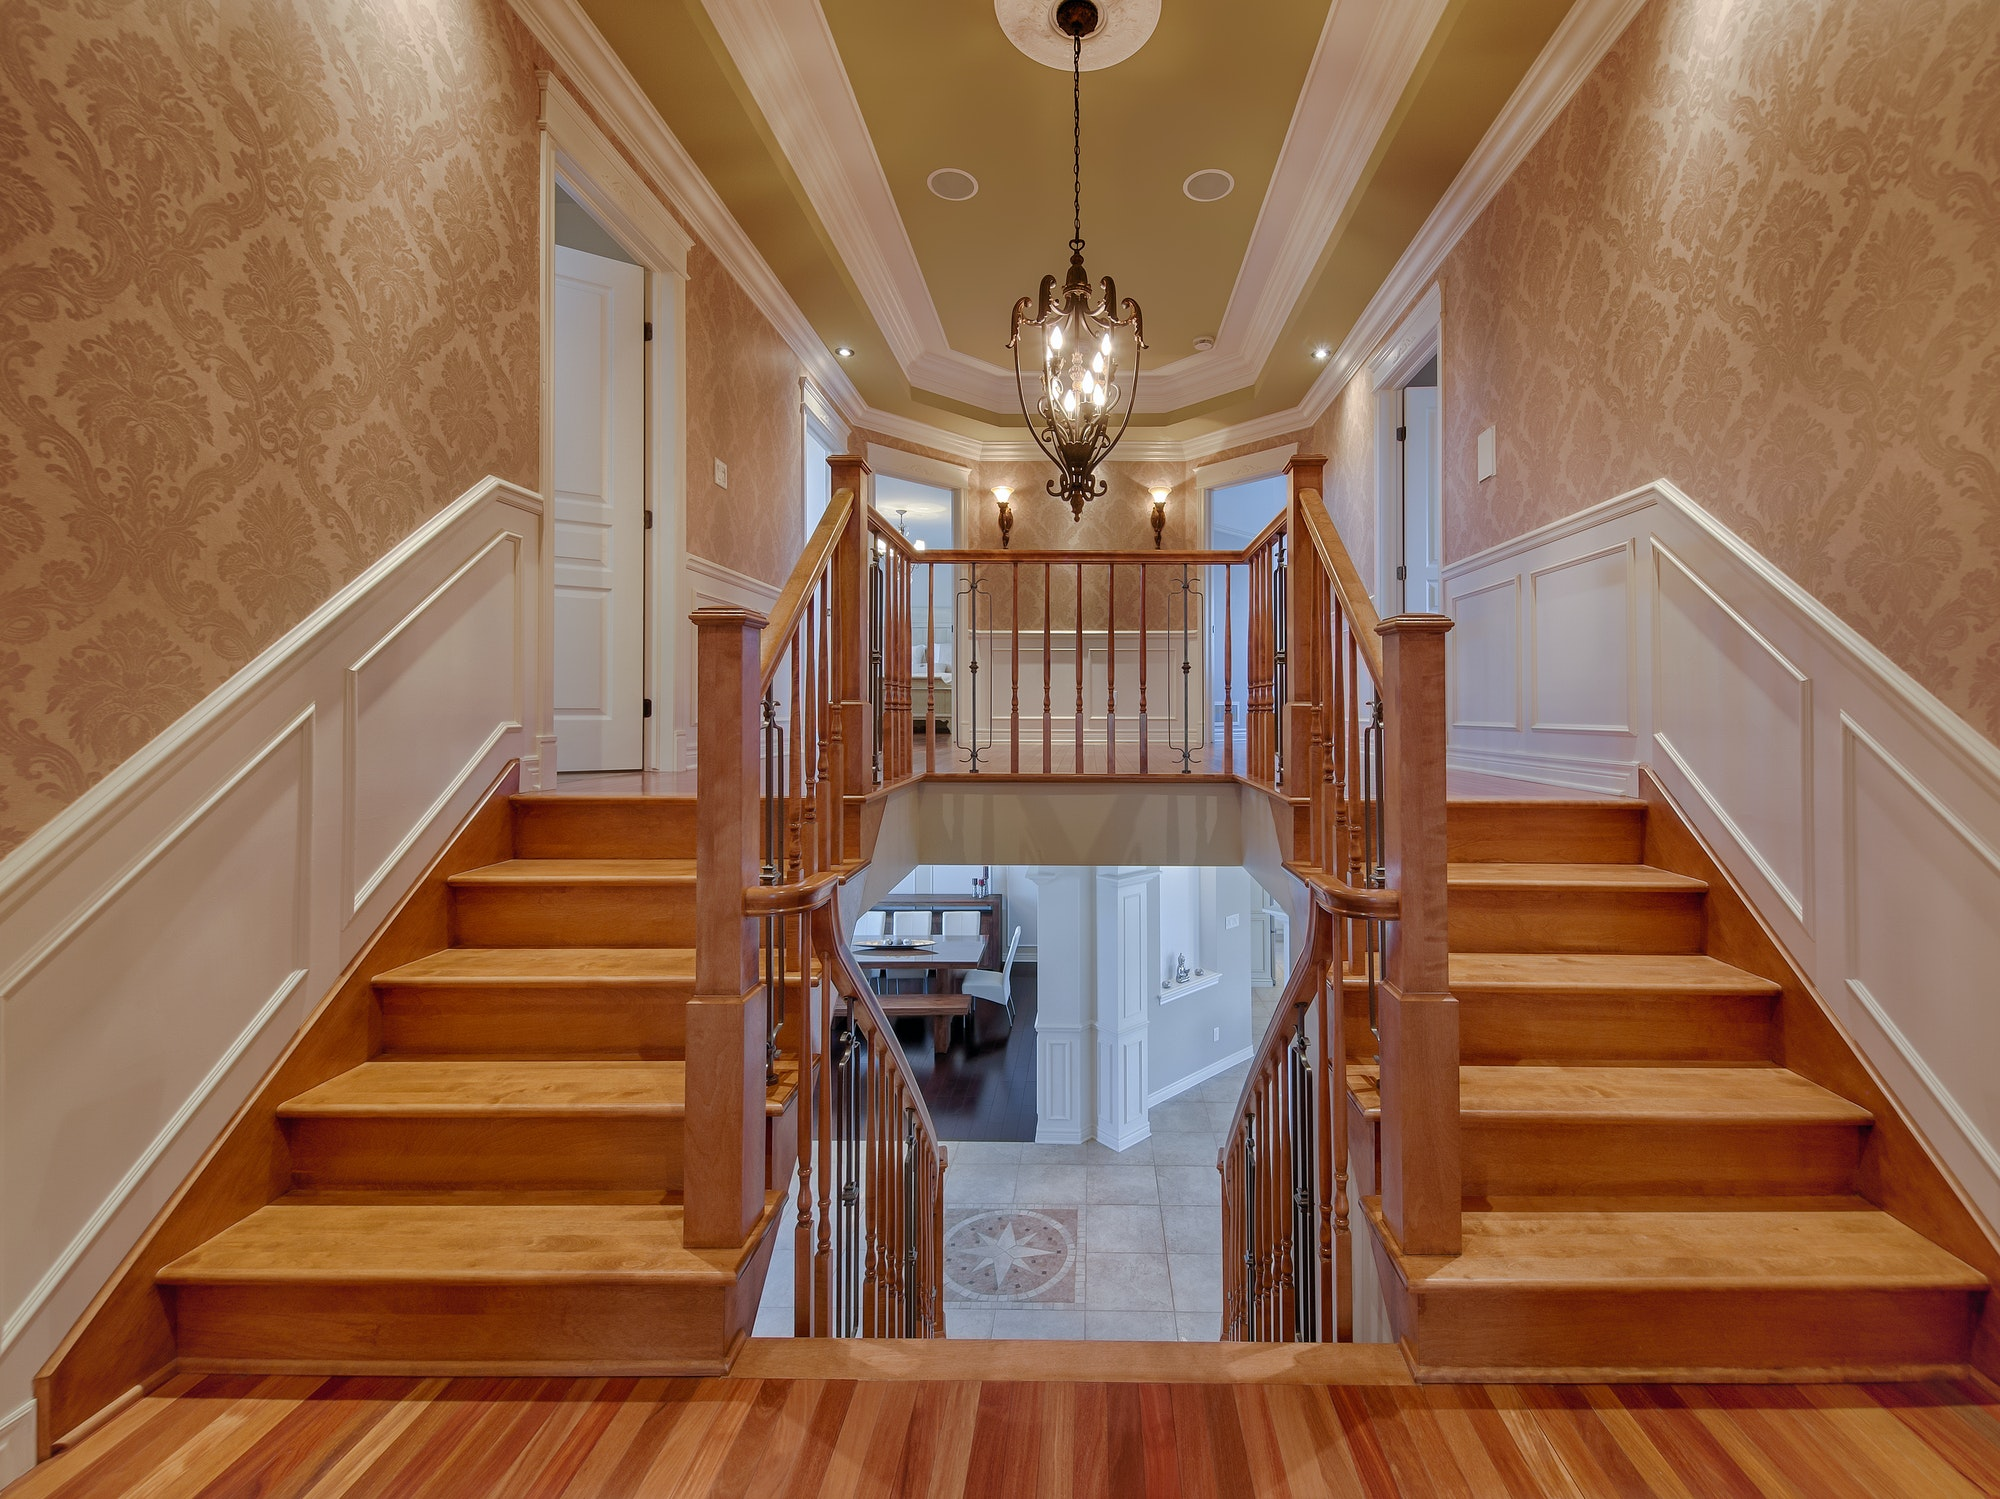 Double wooden staircases in luxury house